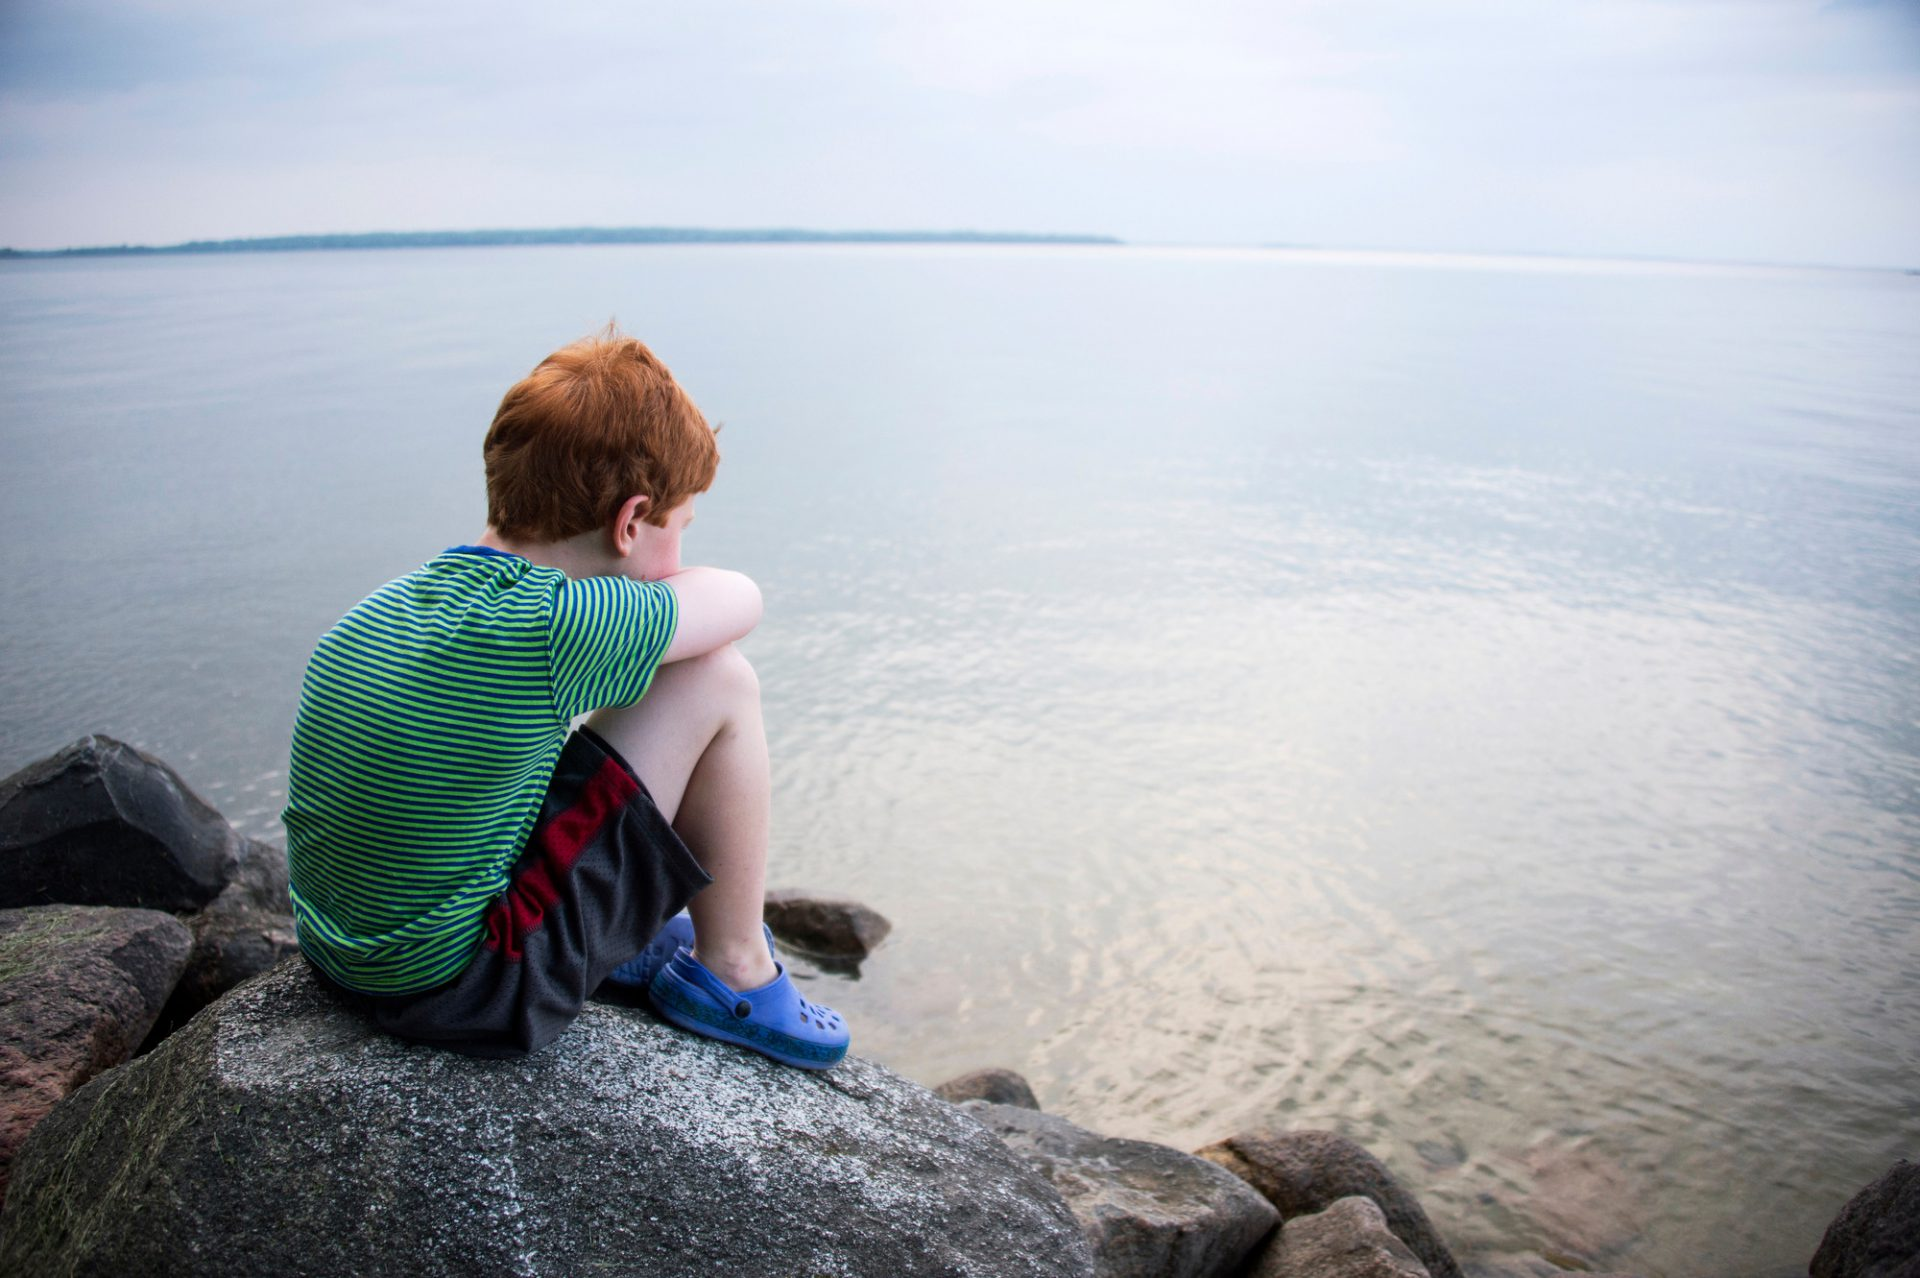 Photo: A young boy stares out over the water at Leech Lake, Minnesota.